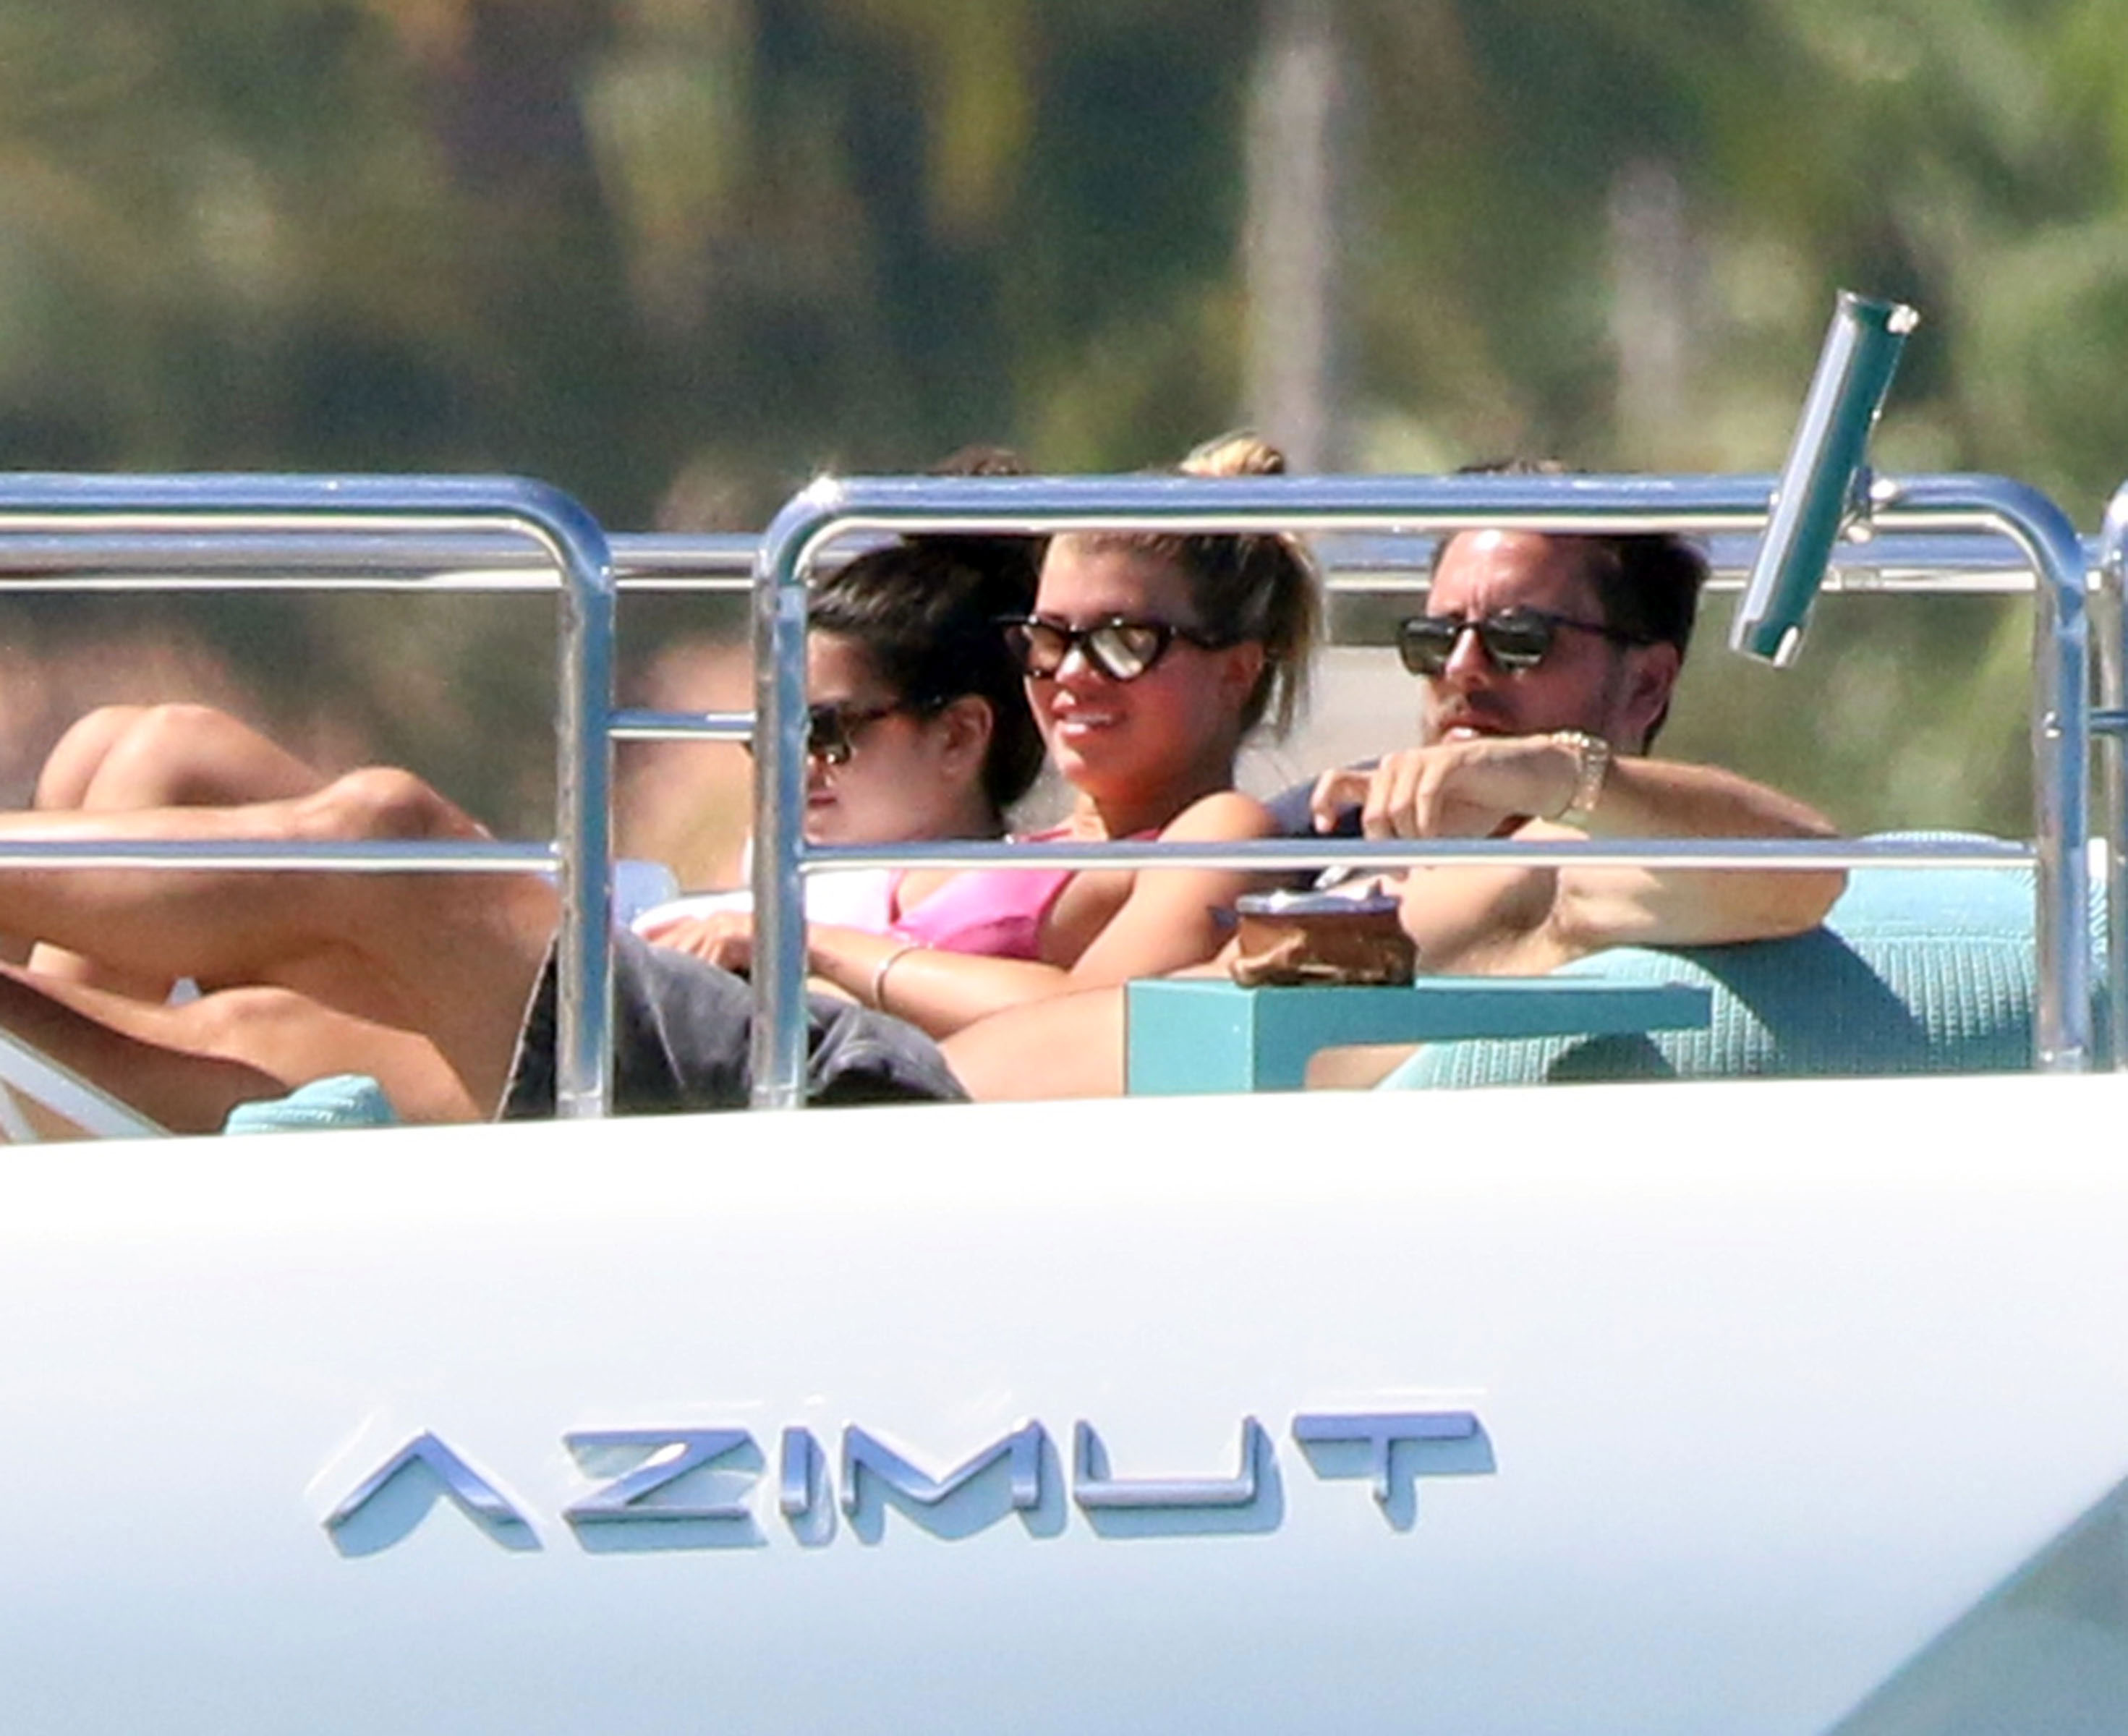 Scott Disick Sofia Richie vacation in Mexico - Richie was all smiles on the voyage.